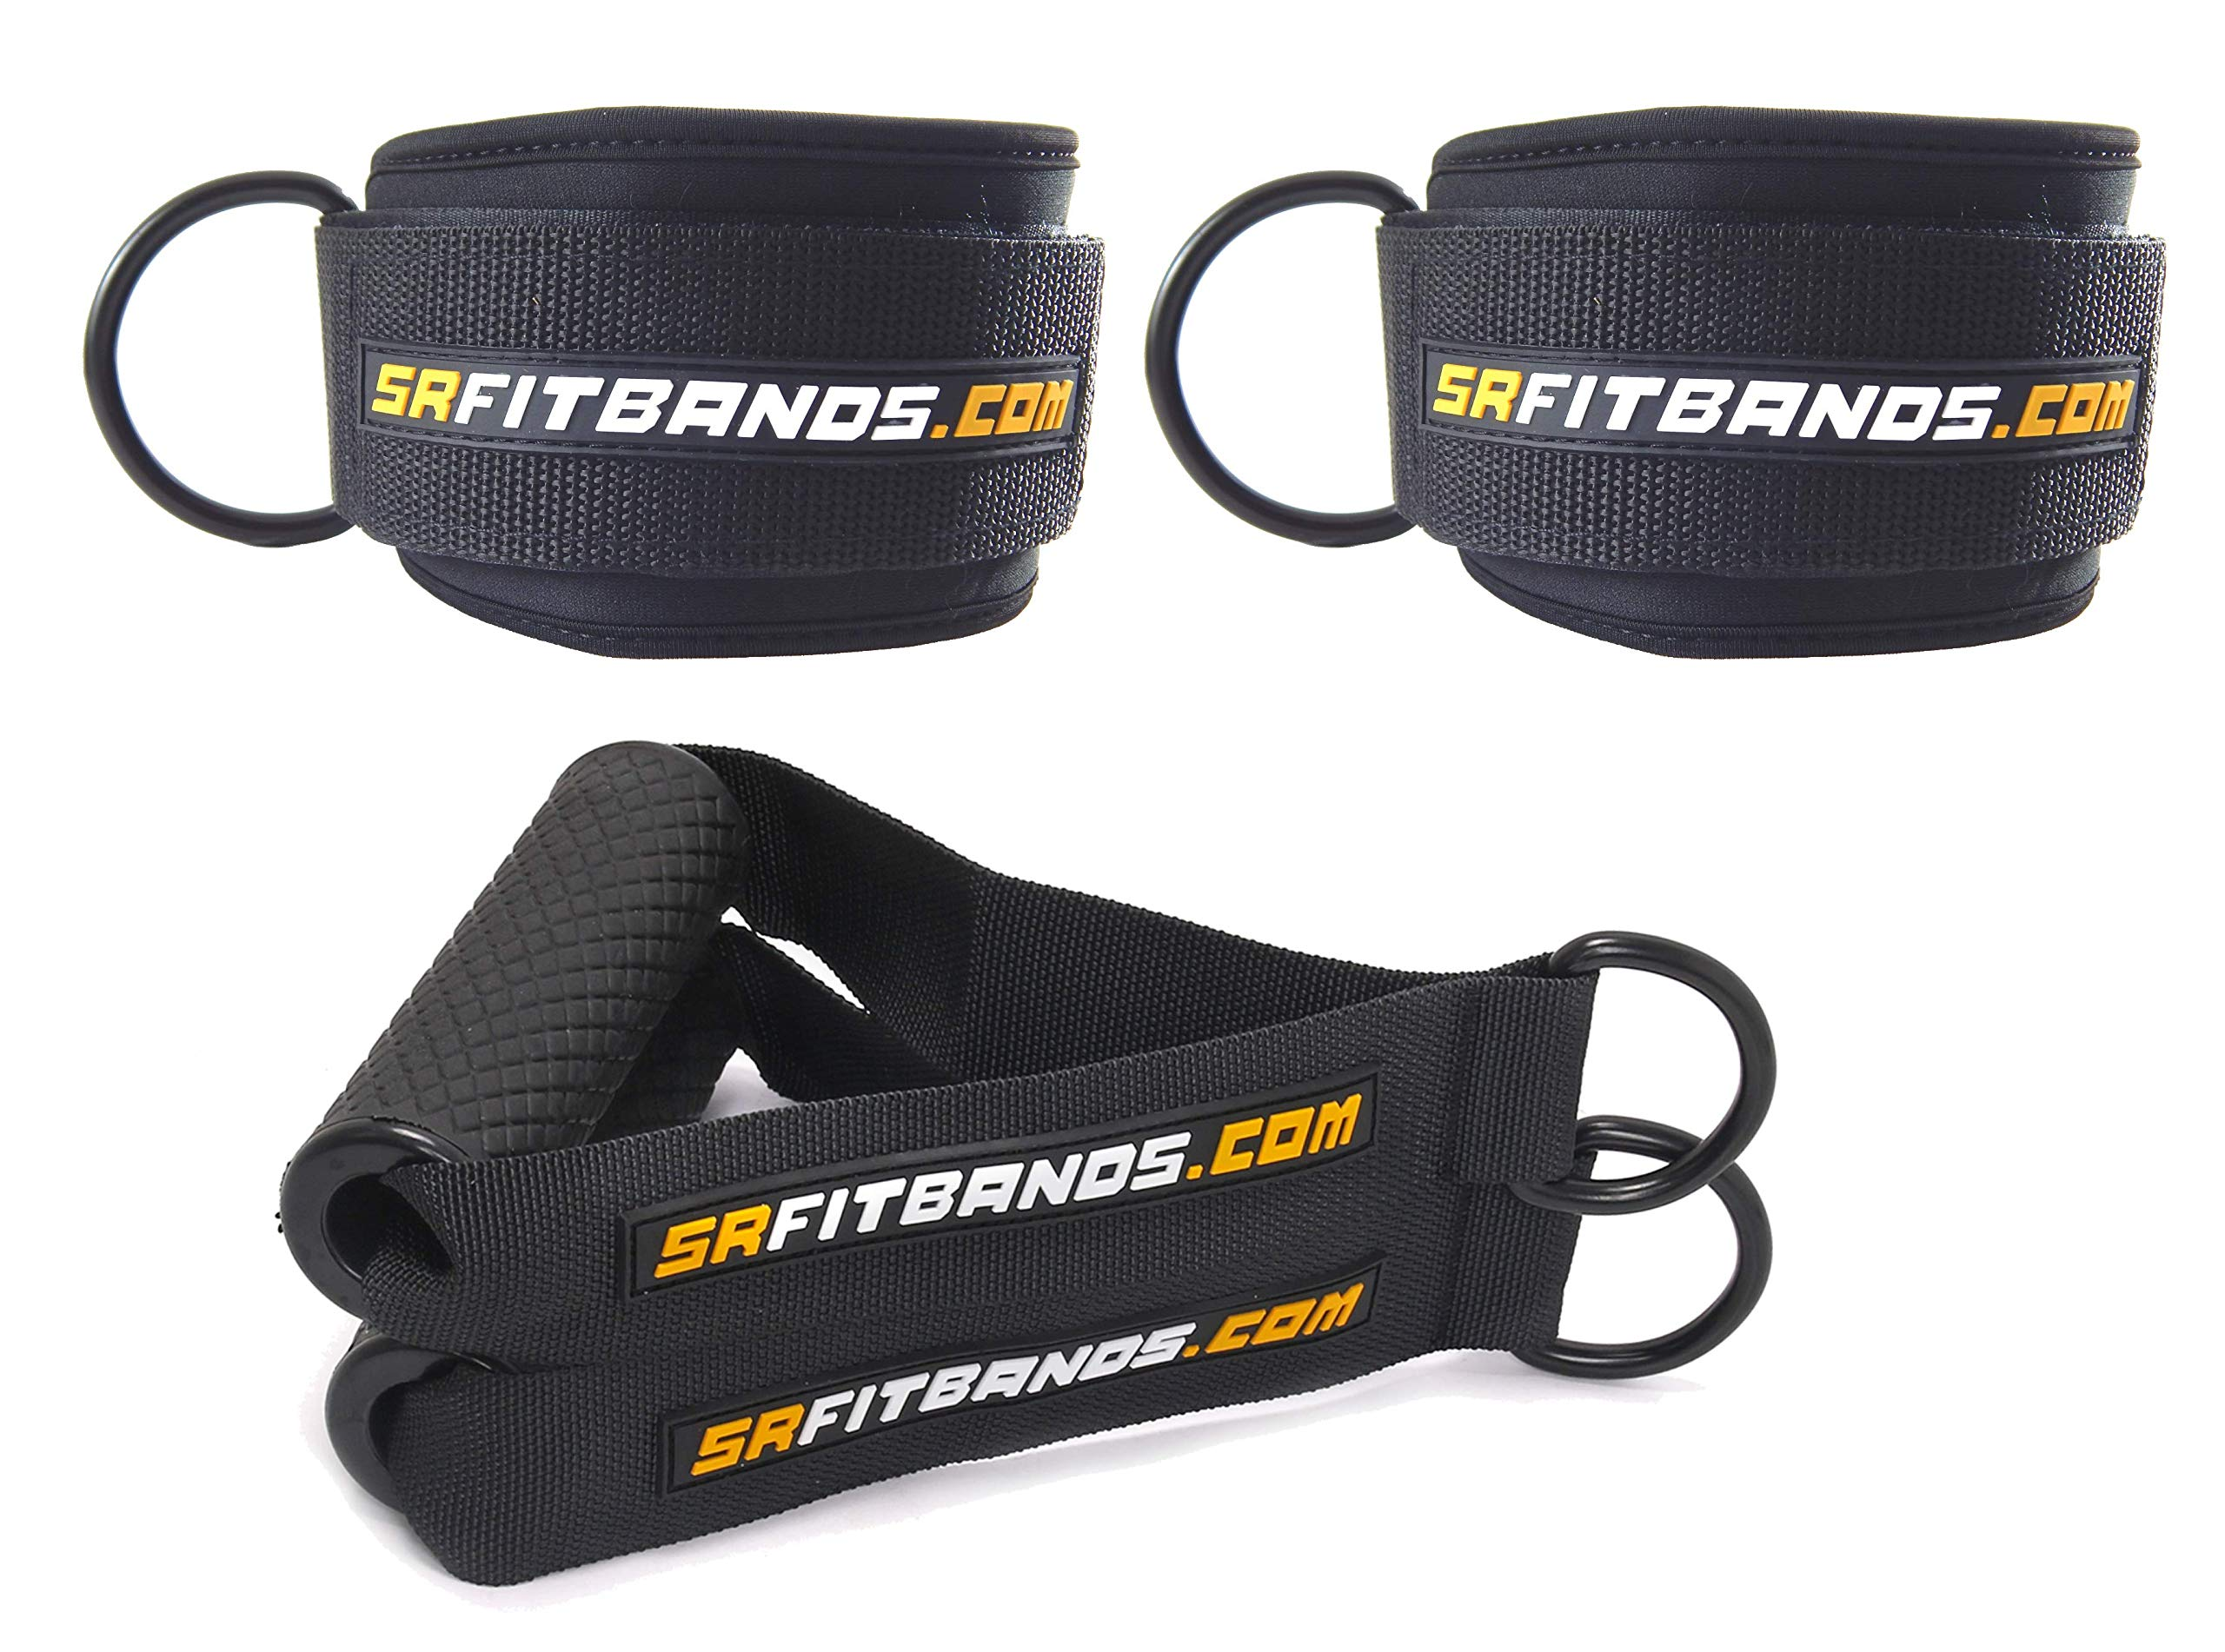 Training Accessory Kit   2 Professional Grade Ankle Cuffs and 2 Handles   The Athlete Accessory Kit for Teams, Bodybuilding, Powerlifting, Crossfit or Home Gyms